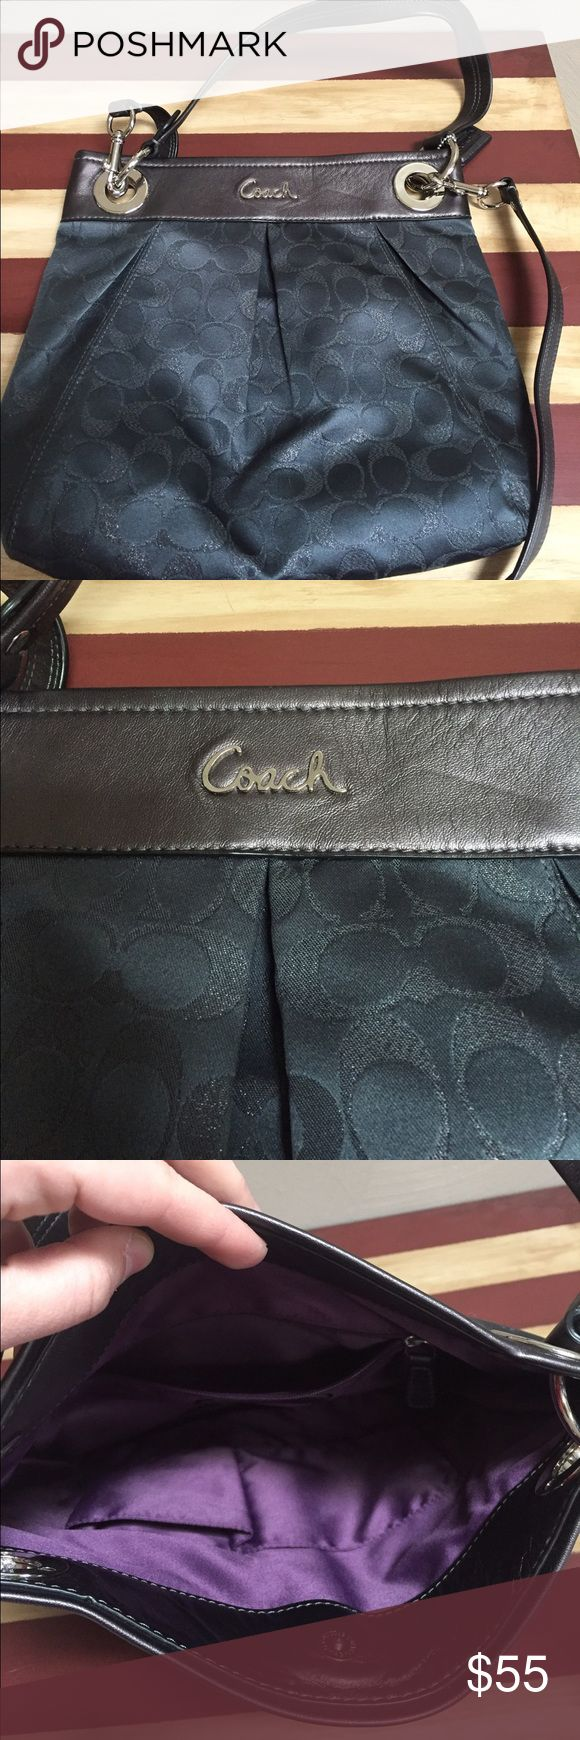 Coach large crossbody purse Excellent unused condition NWOT. Super cute neutral purse, will match everything! Can be worn on shoulder or crossbody Coach Bags Crossbody Bags